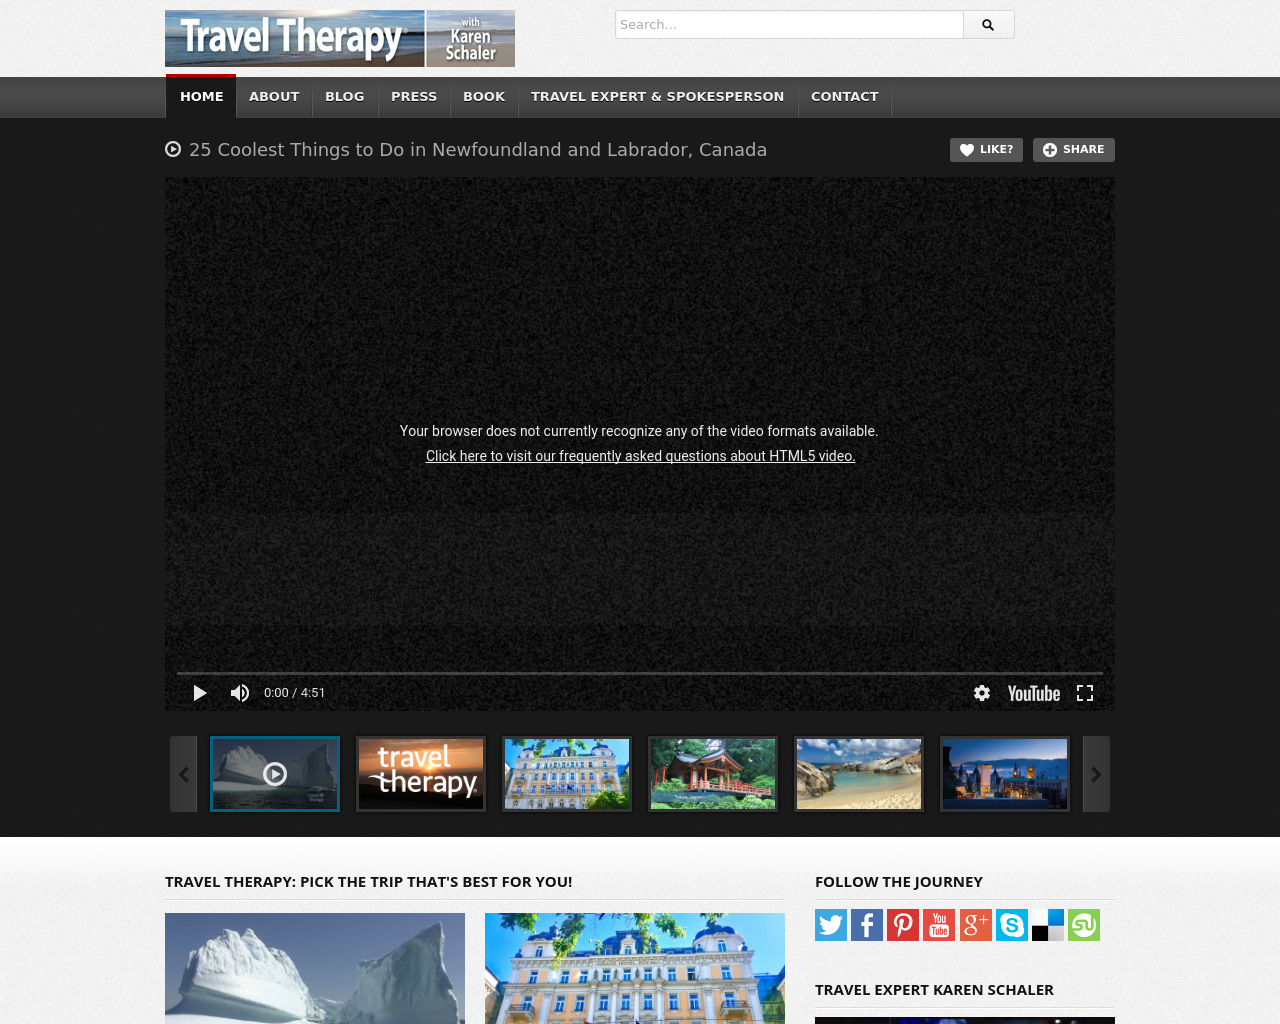 TRAVEL-THERAPY-Advertising-Reviews-Pricing